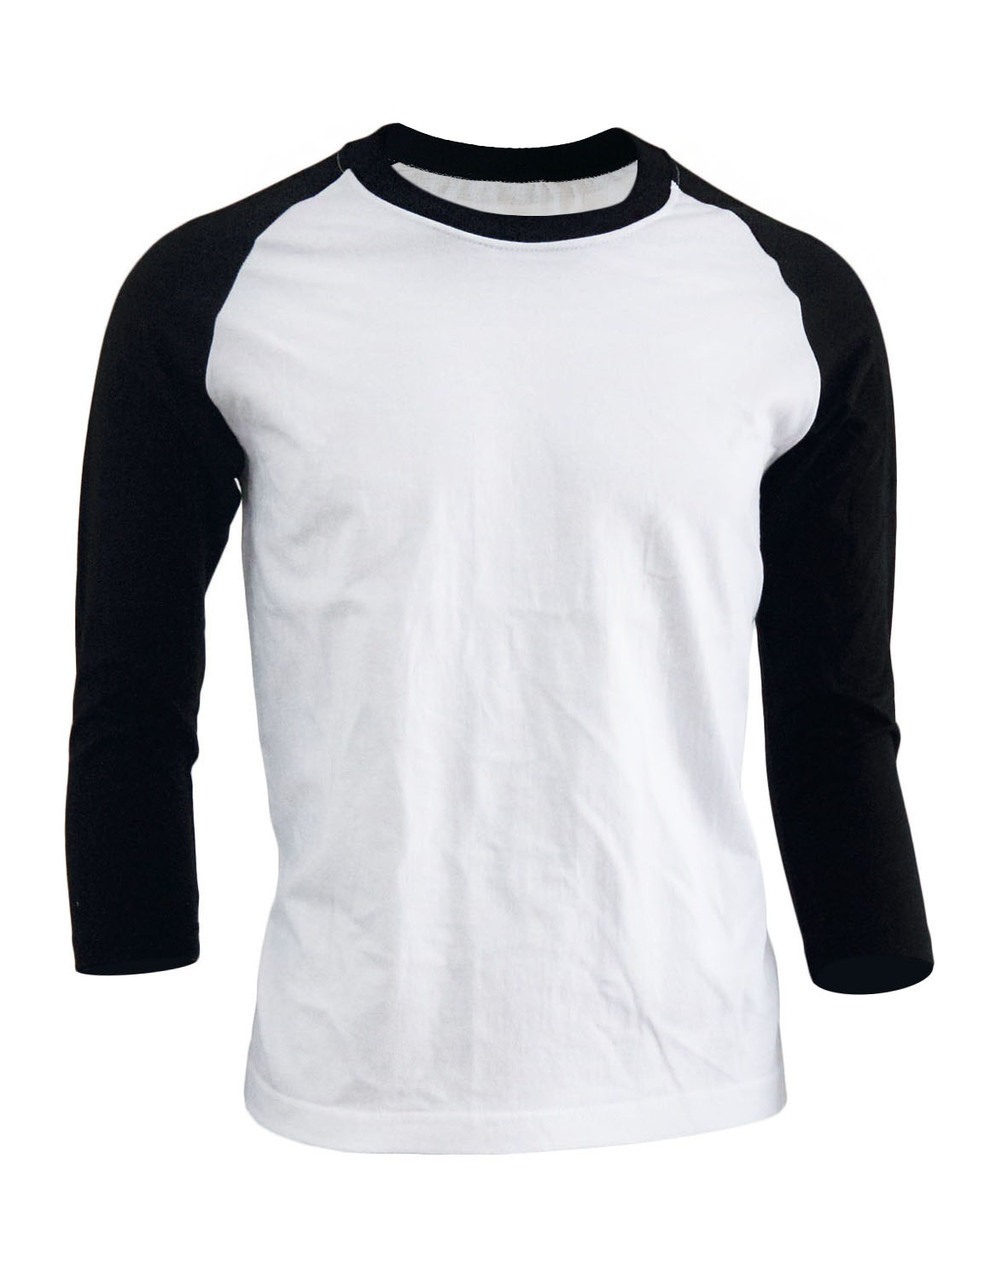 ef502837 BCPOLO Unisex casual round neck t-shirt 3/4 sleeve 2 tone color Raglan t- shirt cotton comfortable t-shirt.